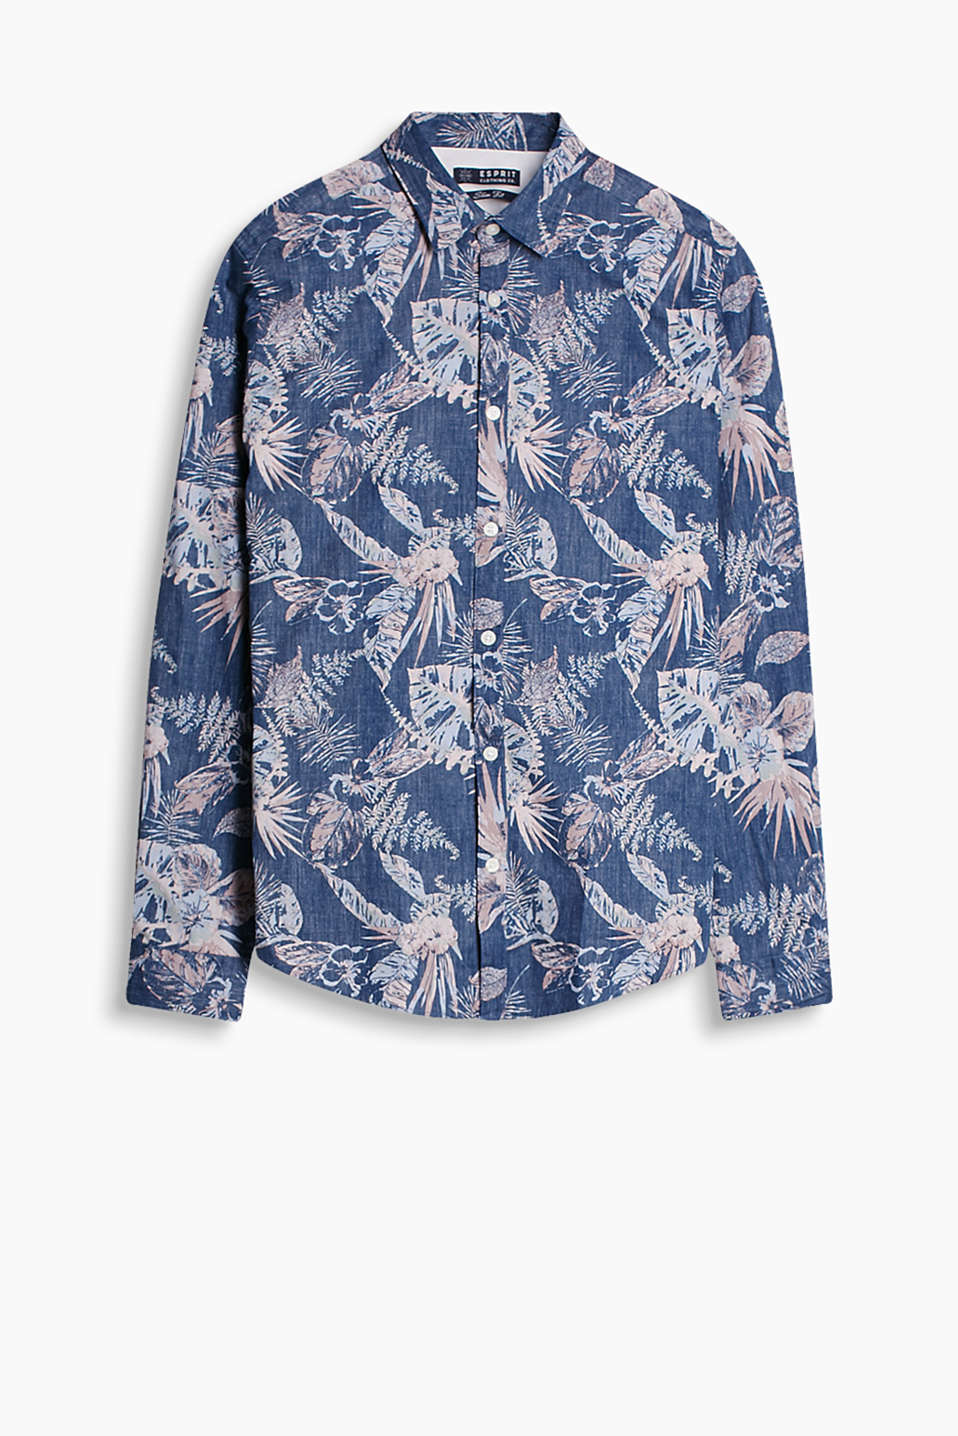 100% cotton shirt with an on-trend, dark botanic print